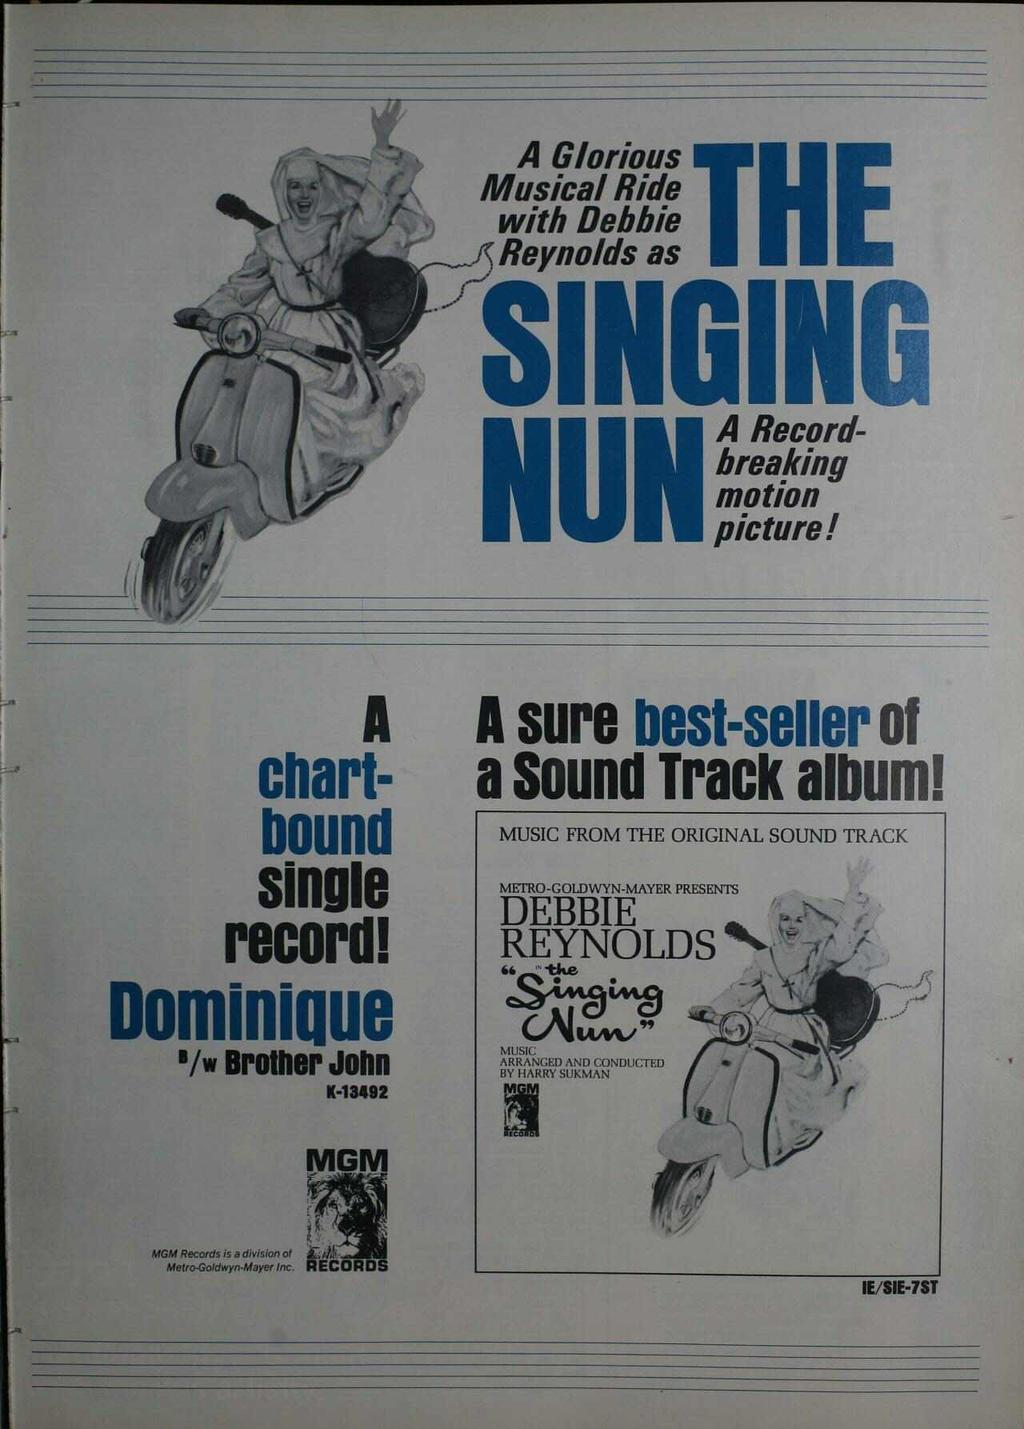 \ 4,. A Glorious Musical Ride with Debbie fç Reynolds as N co A rd breareking motion picture! A chart bound single record! Dominipue '/w Brother John lldi49p A sure best seller of a Sound Track album!